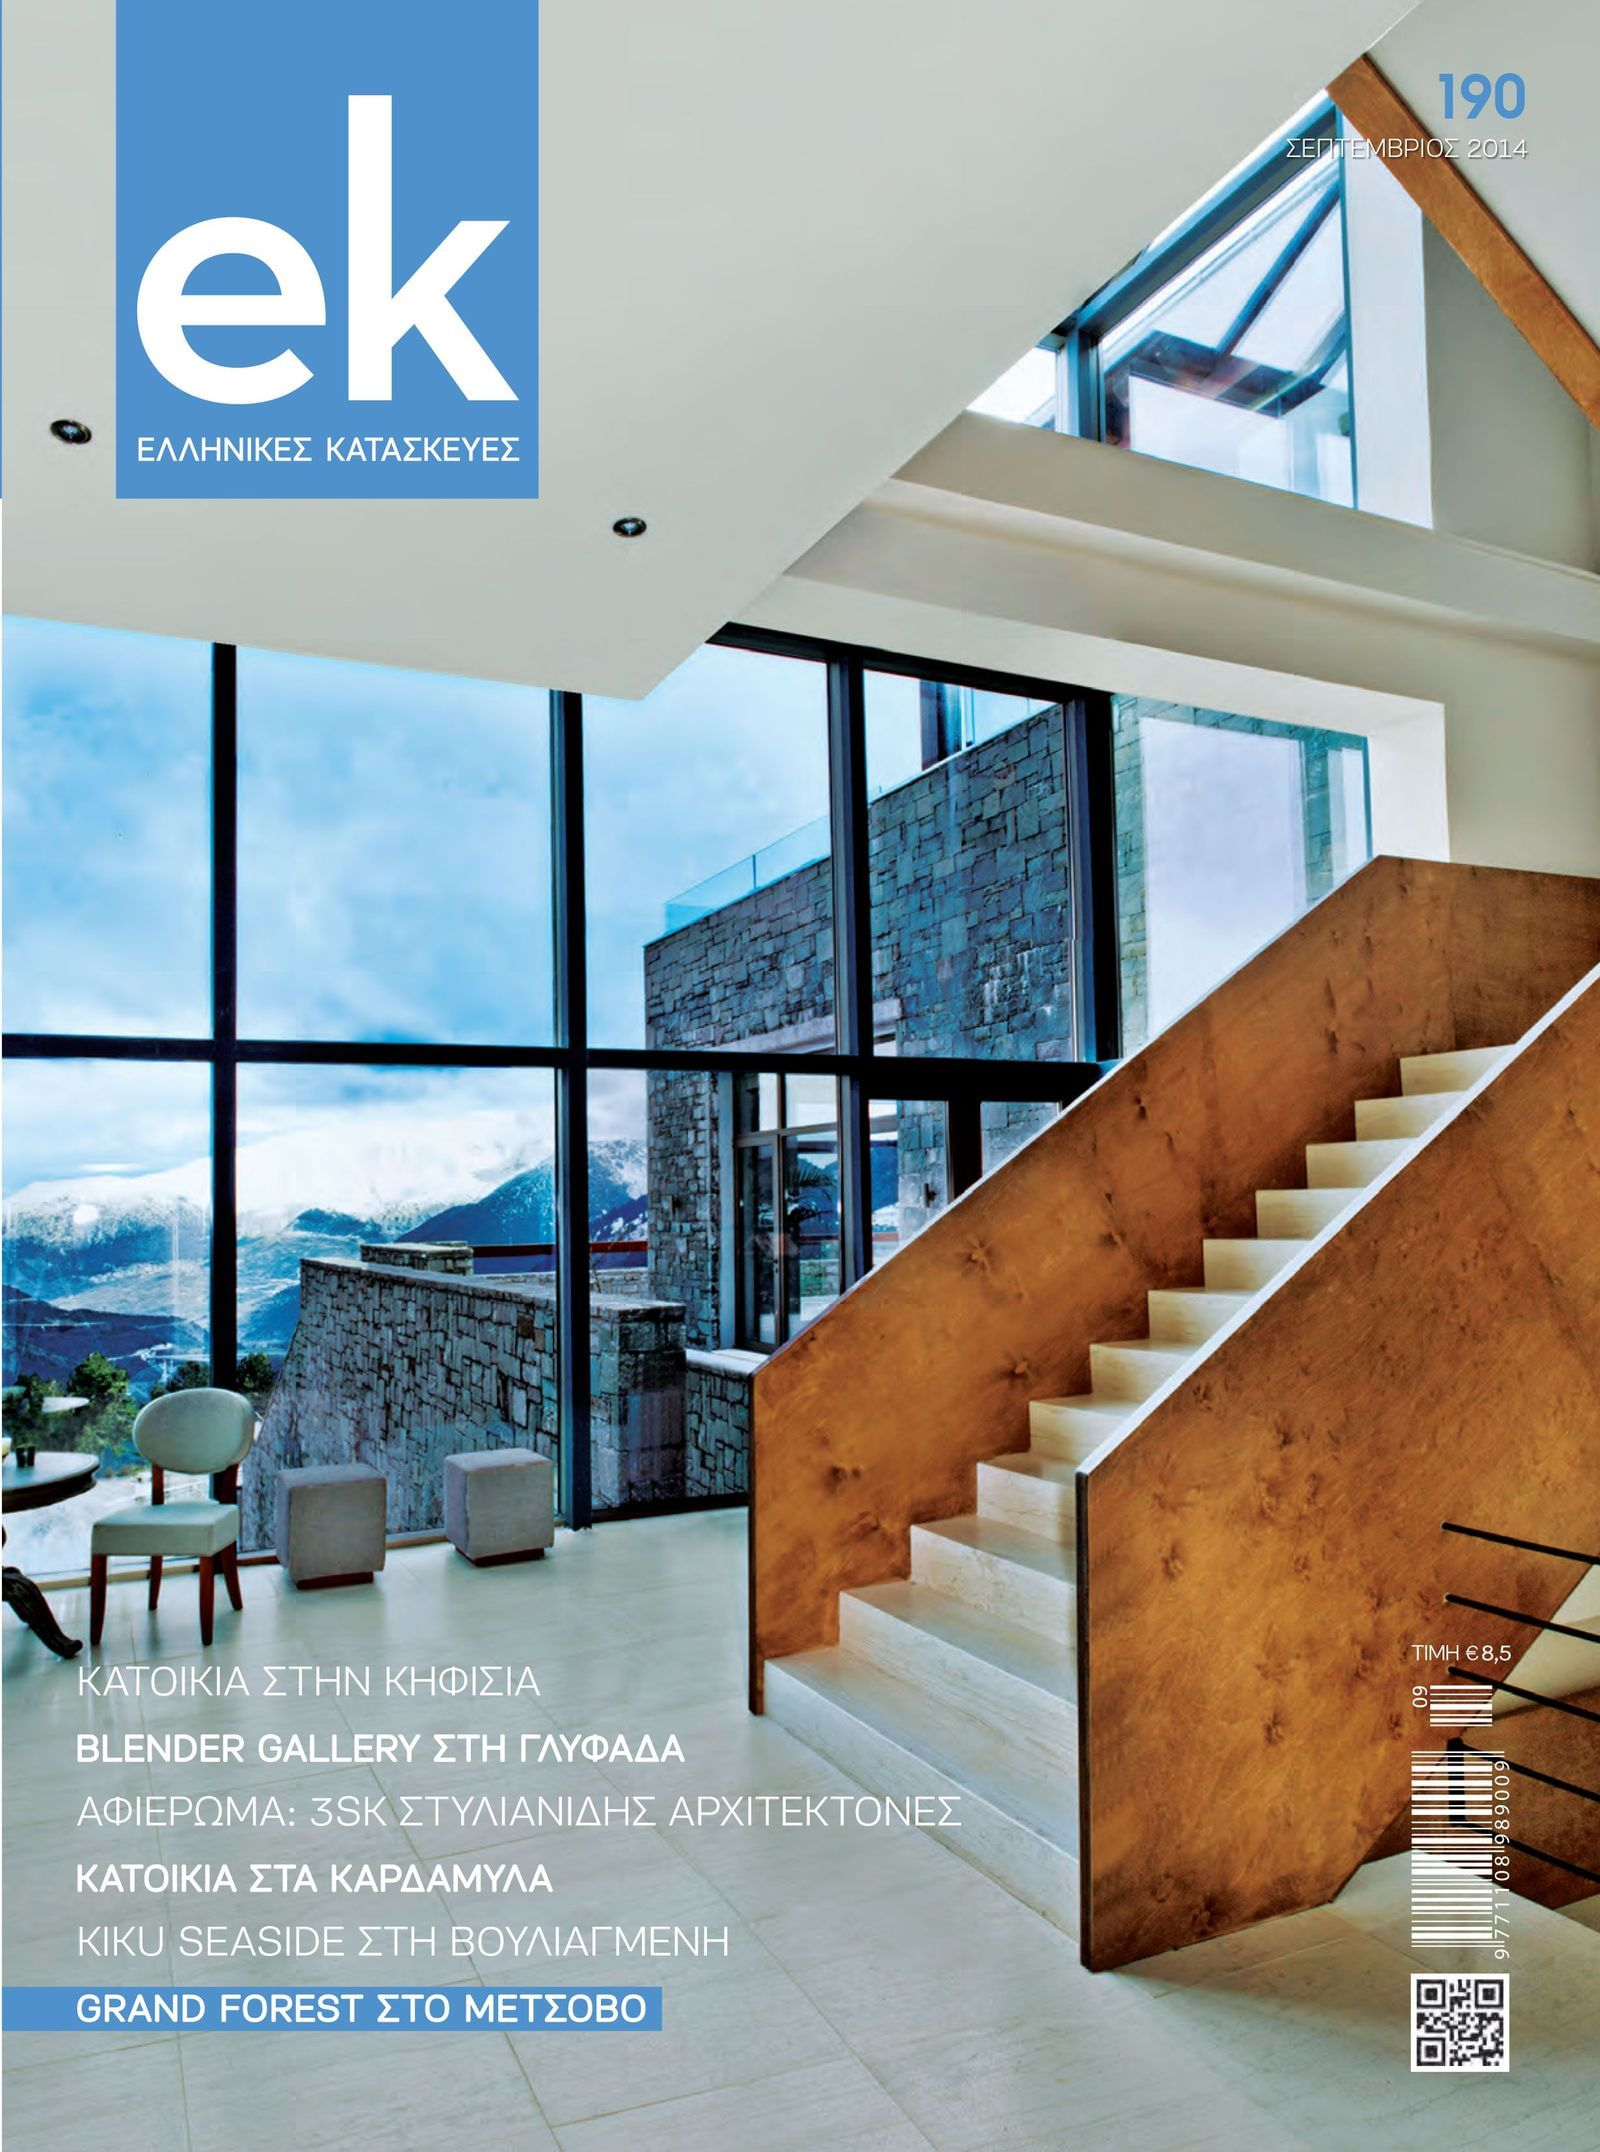 Publication of project 'Blender Gallery' by Erato Choli at EK magazine, Issue 190